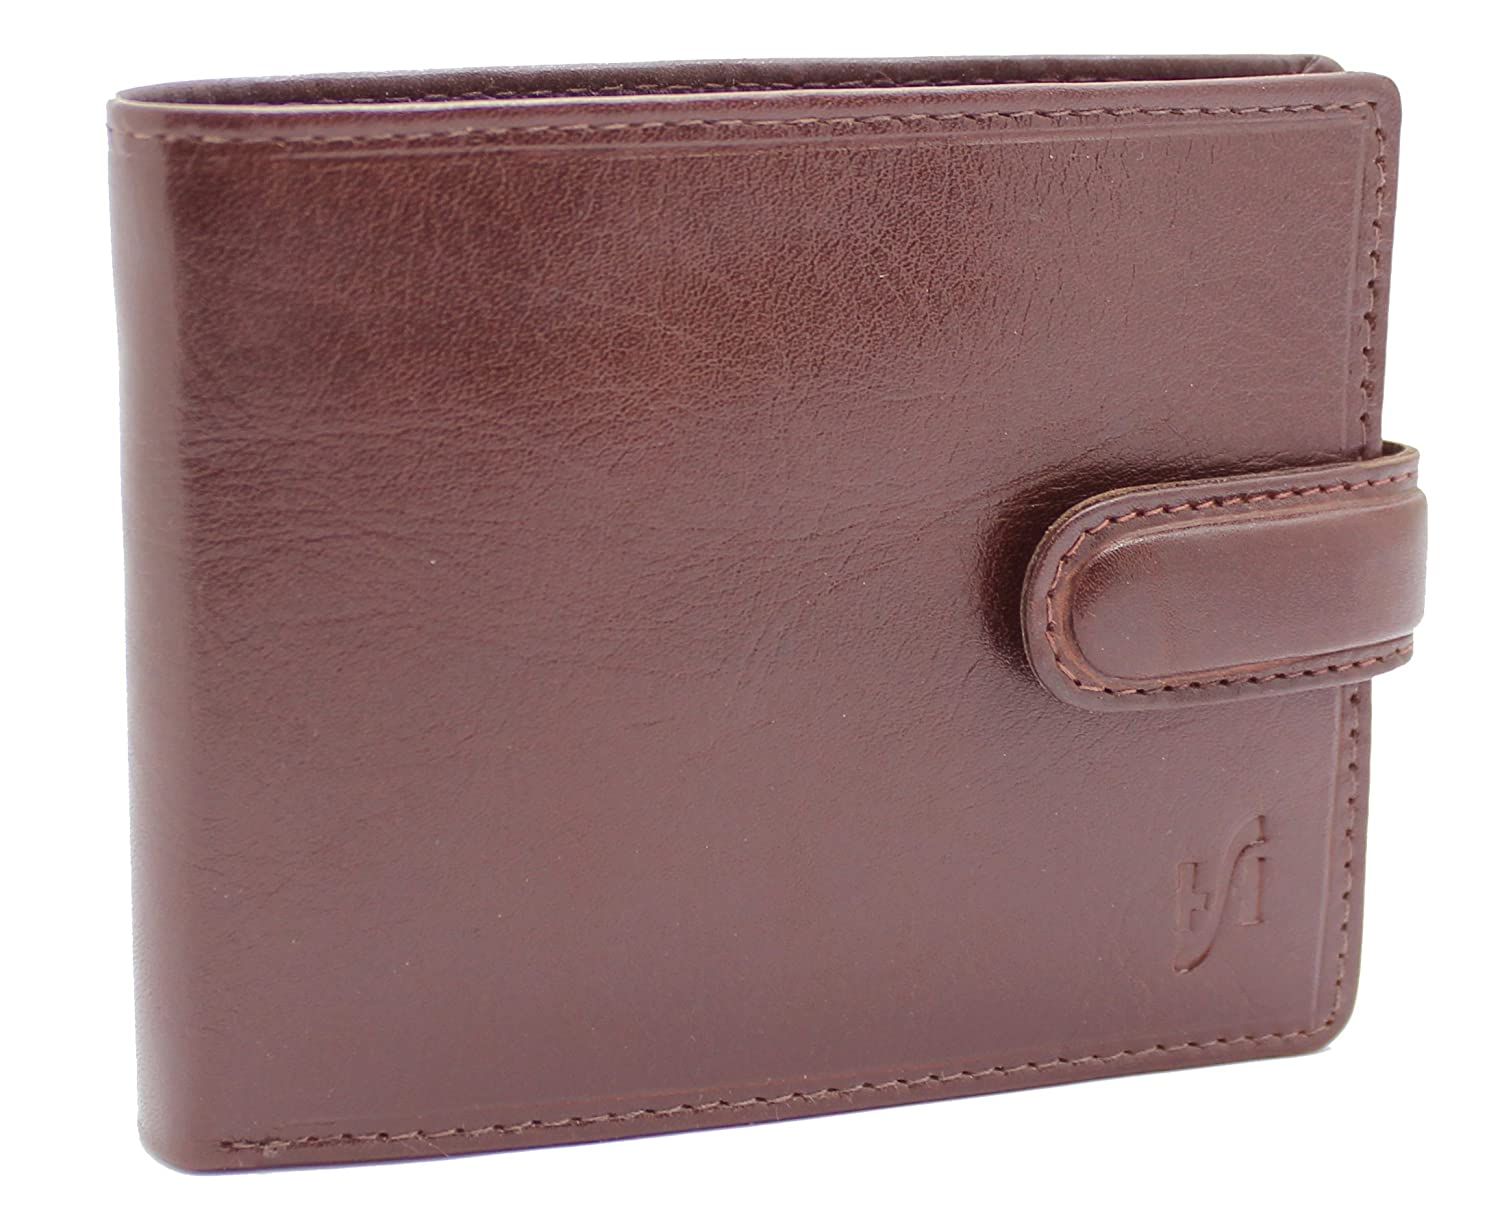 Starhide Mens Soft Luxury Real Leather Trifold Wallet With ID, Credit Card & Coin Pockets #1212 (Brown) 1212/2